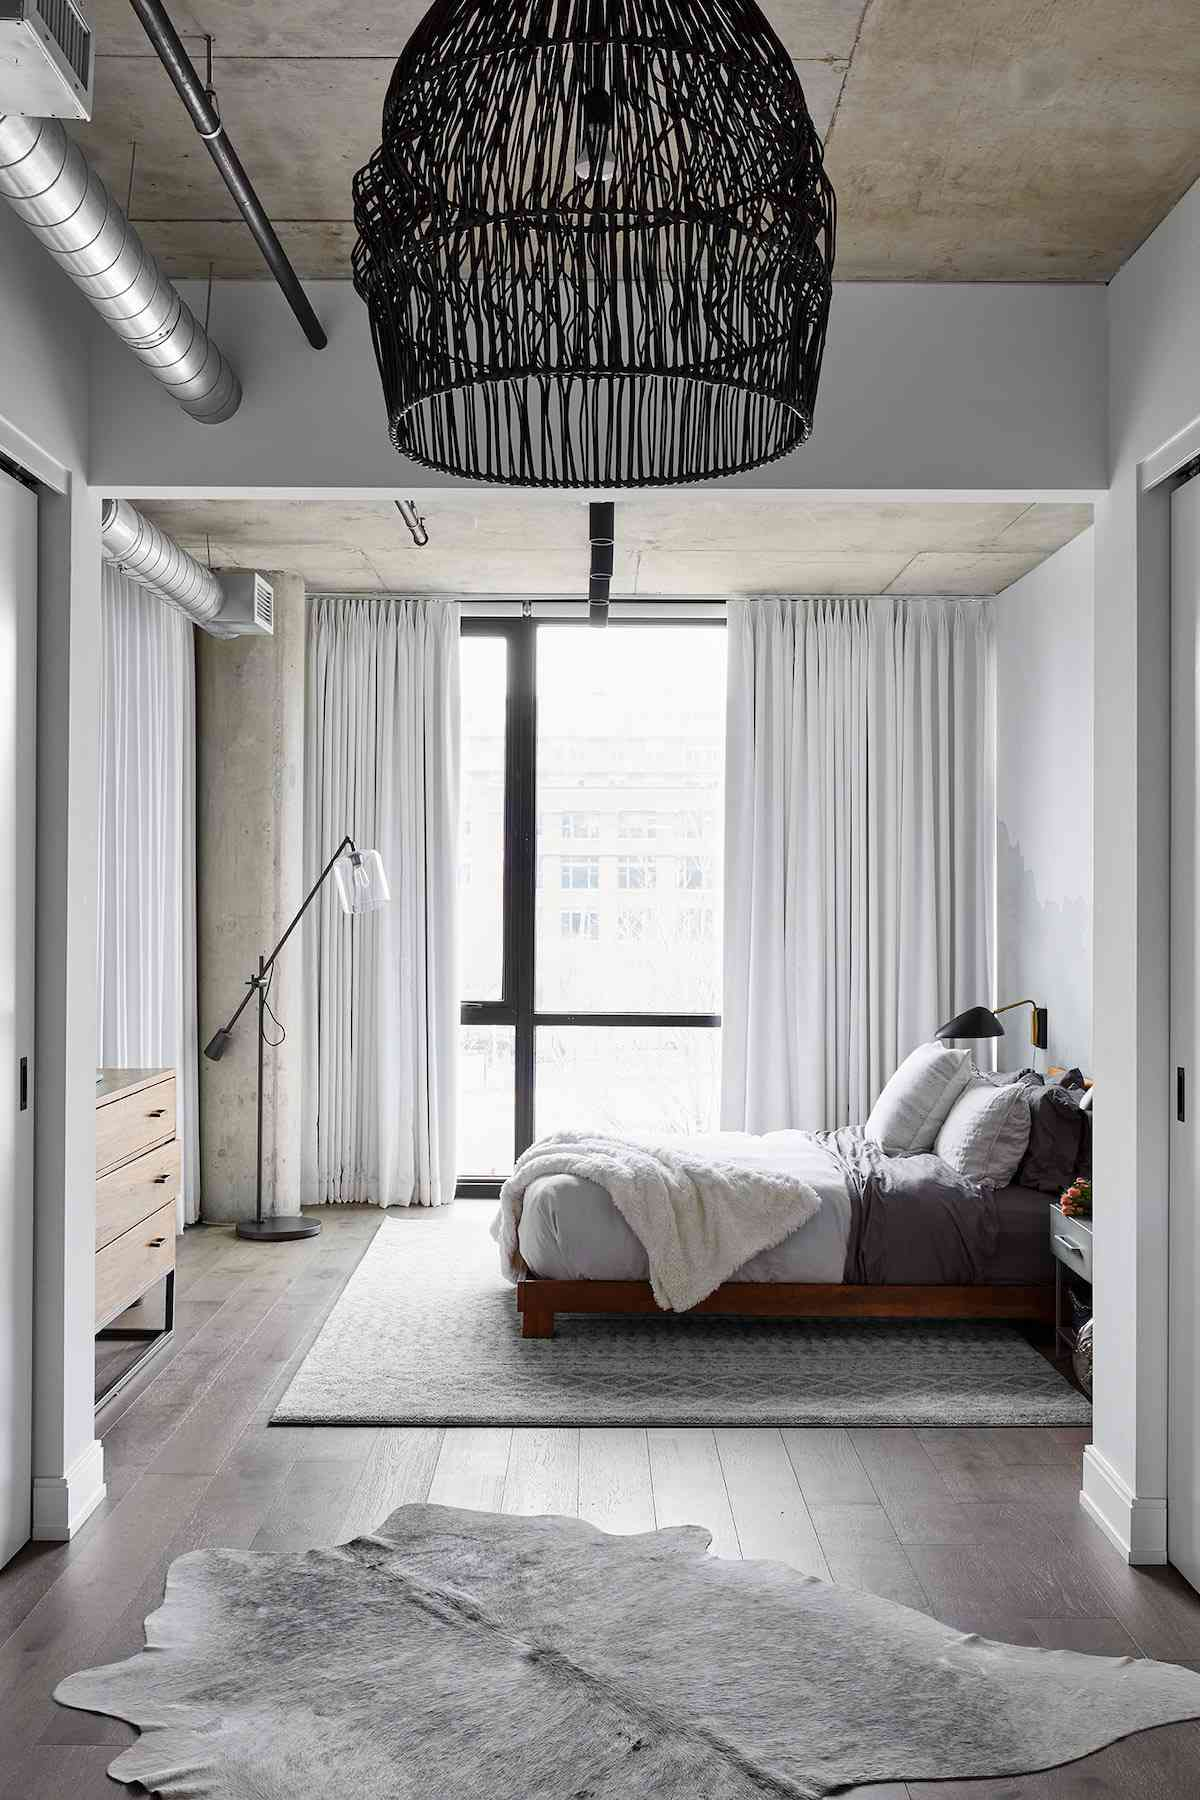 An industrial bedroom with curtains running from ceiling to floor